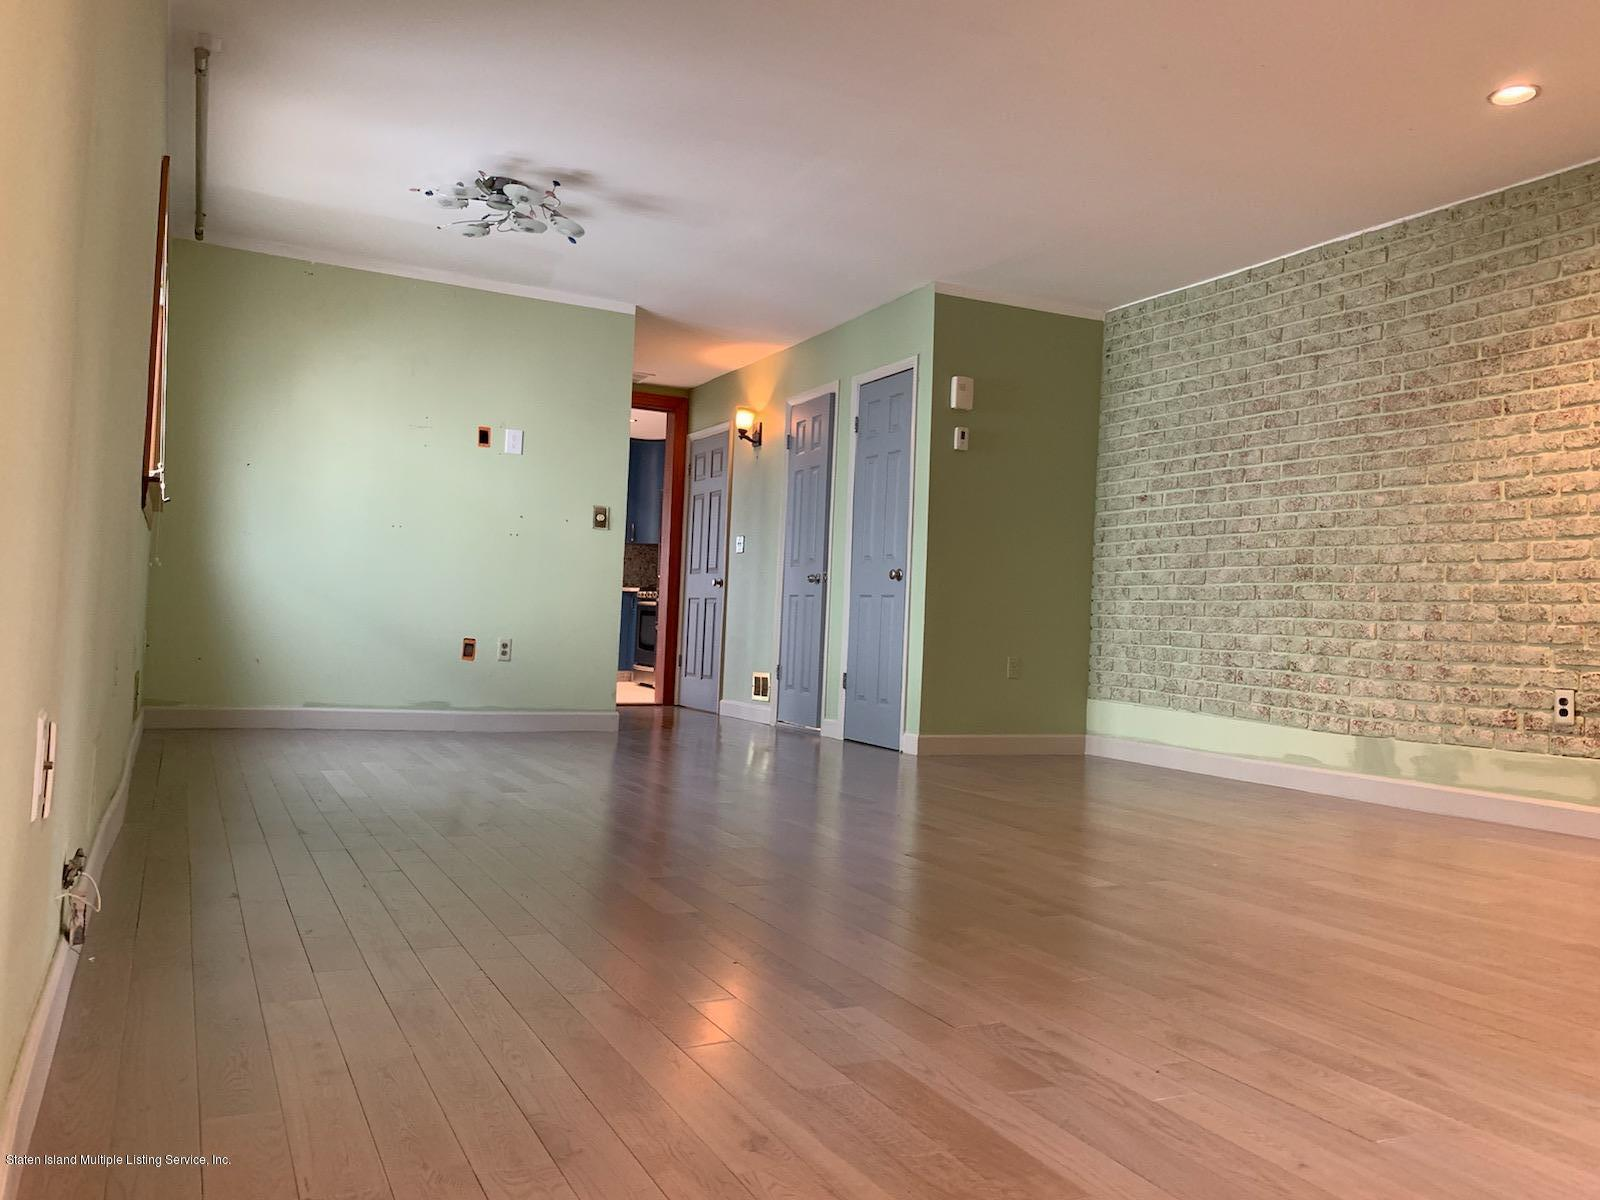 520 Naughton Avenue,Staten Island,New York,10305,United States,3 Bedrooms Bedrooms,6 Rooms Rooms,3 BathroomsBathrooms,Res-Rental,Naughton,1131927